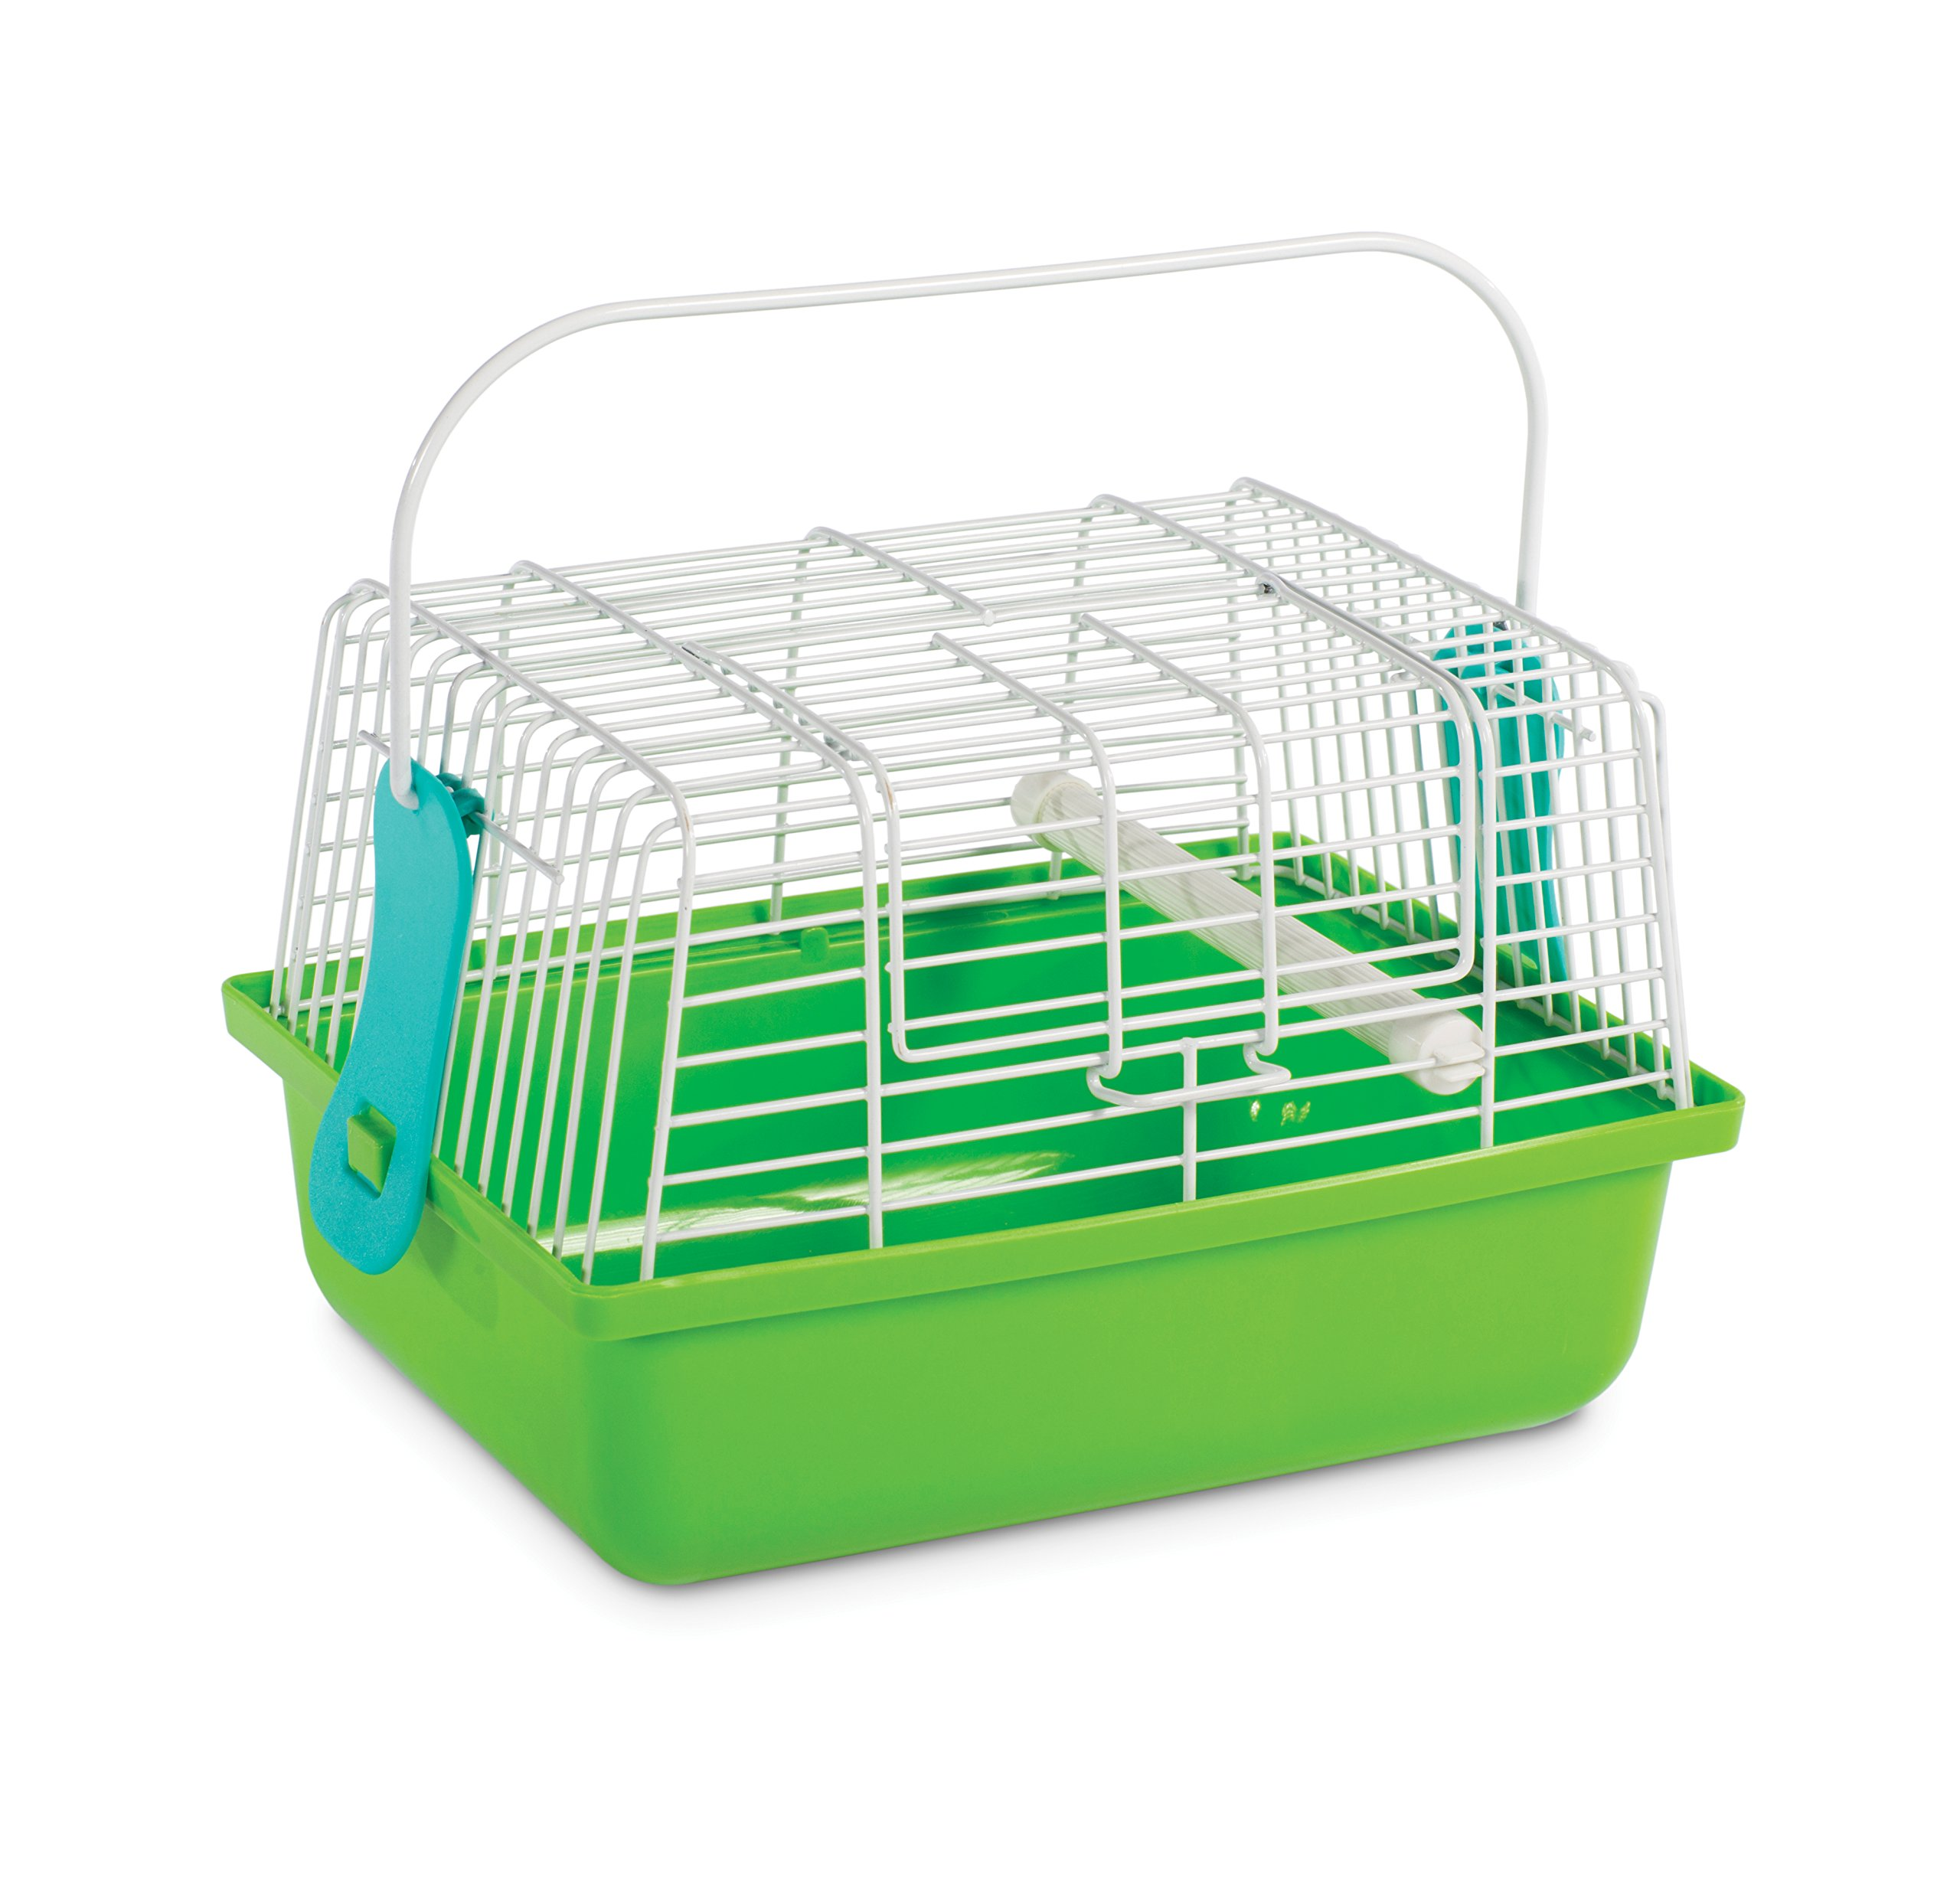 Prevue Pet Products Travel Cage for Birds and Small Animals, Green by Prevue Pet Products